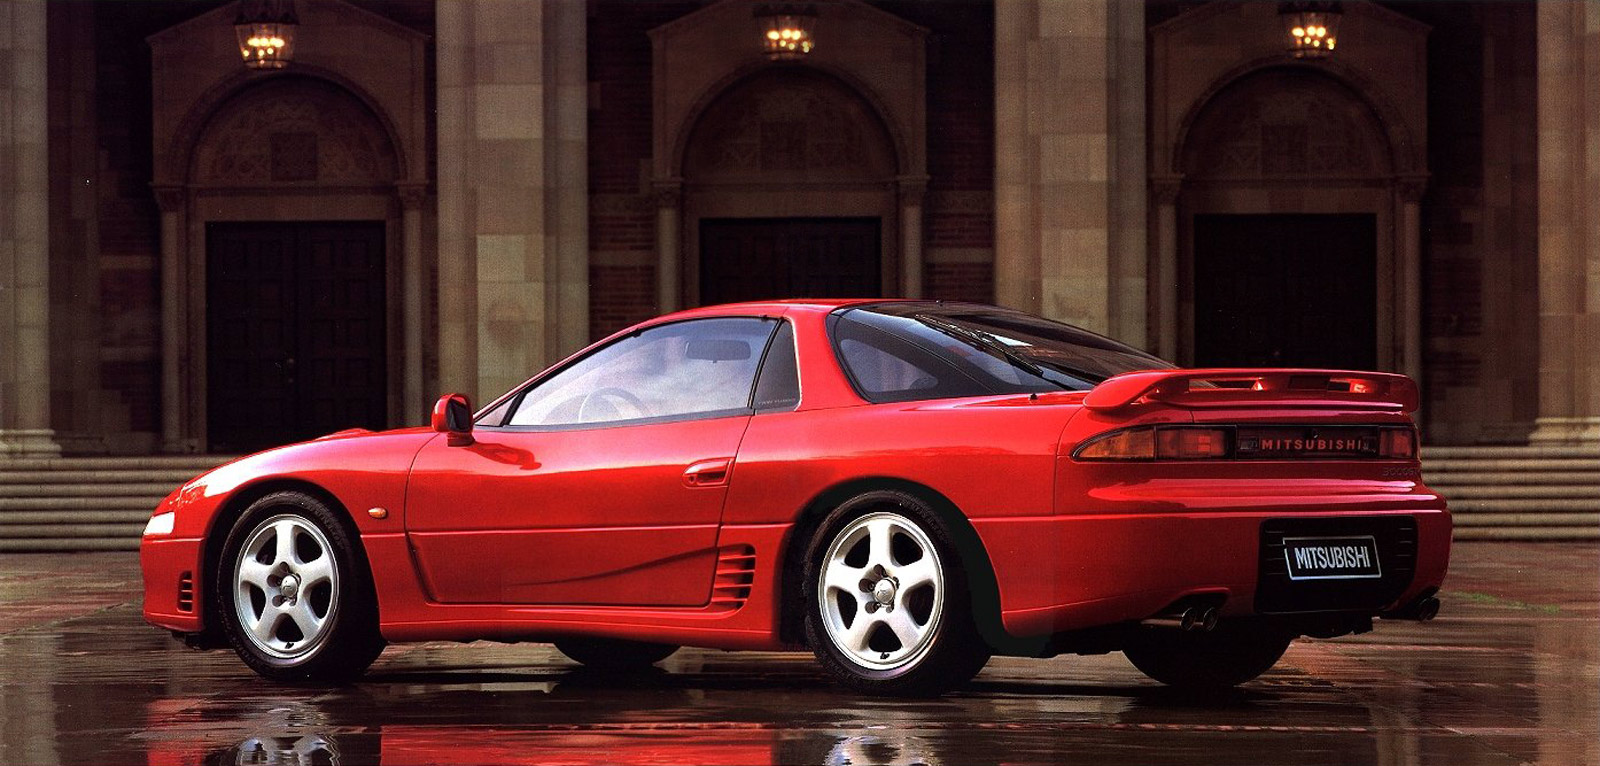 3DTuning of Mitsubishi GTO Coupe 1997 3DTuning.com - unique on-line car configurator for more ...